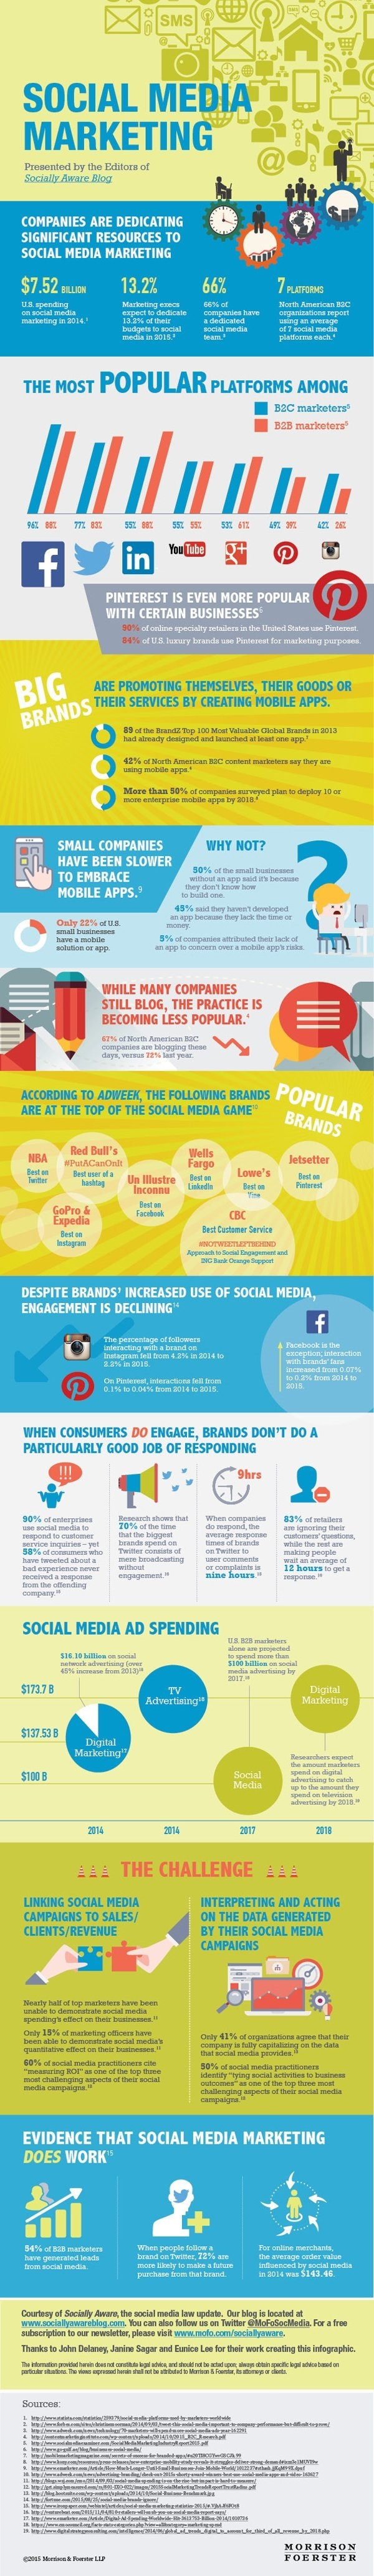 Stat of social media marketing